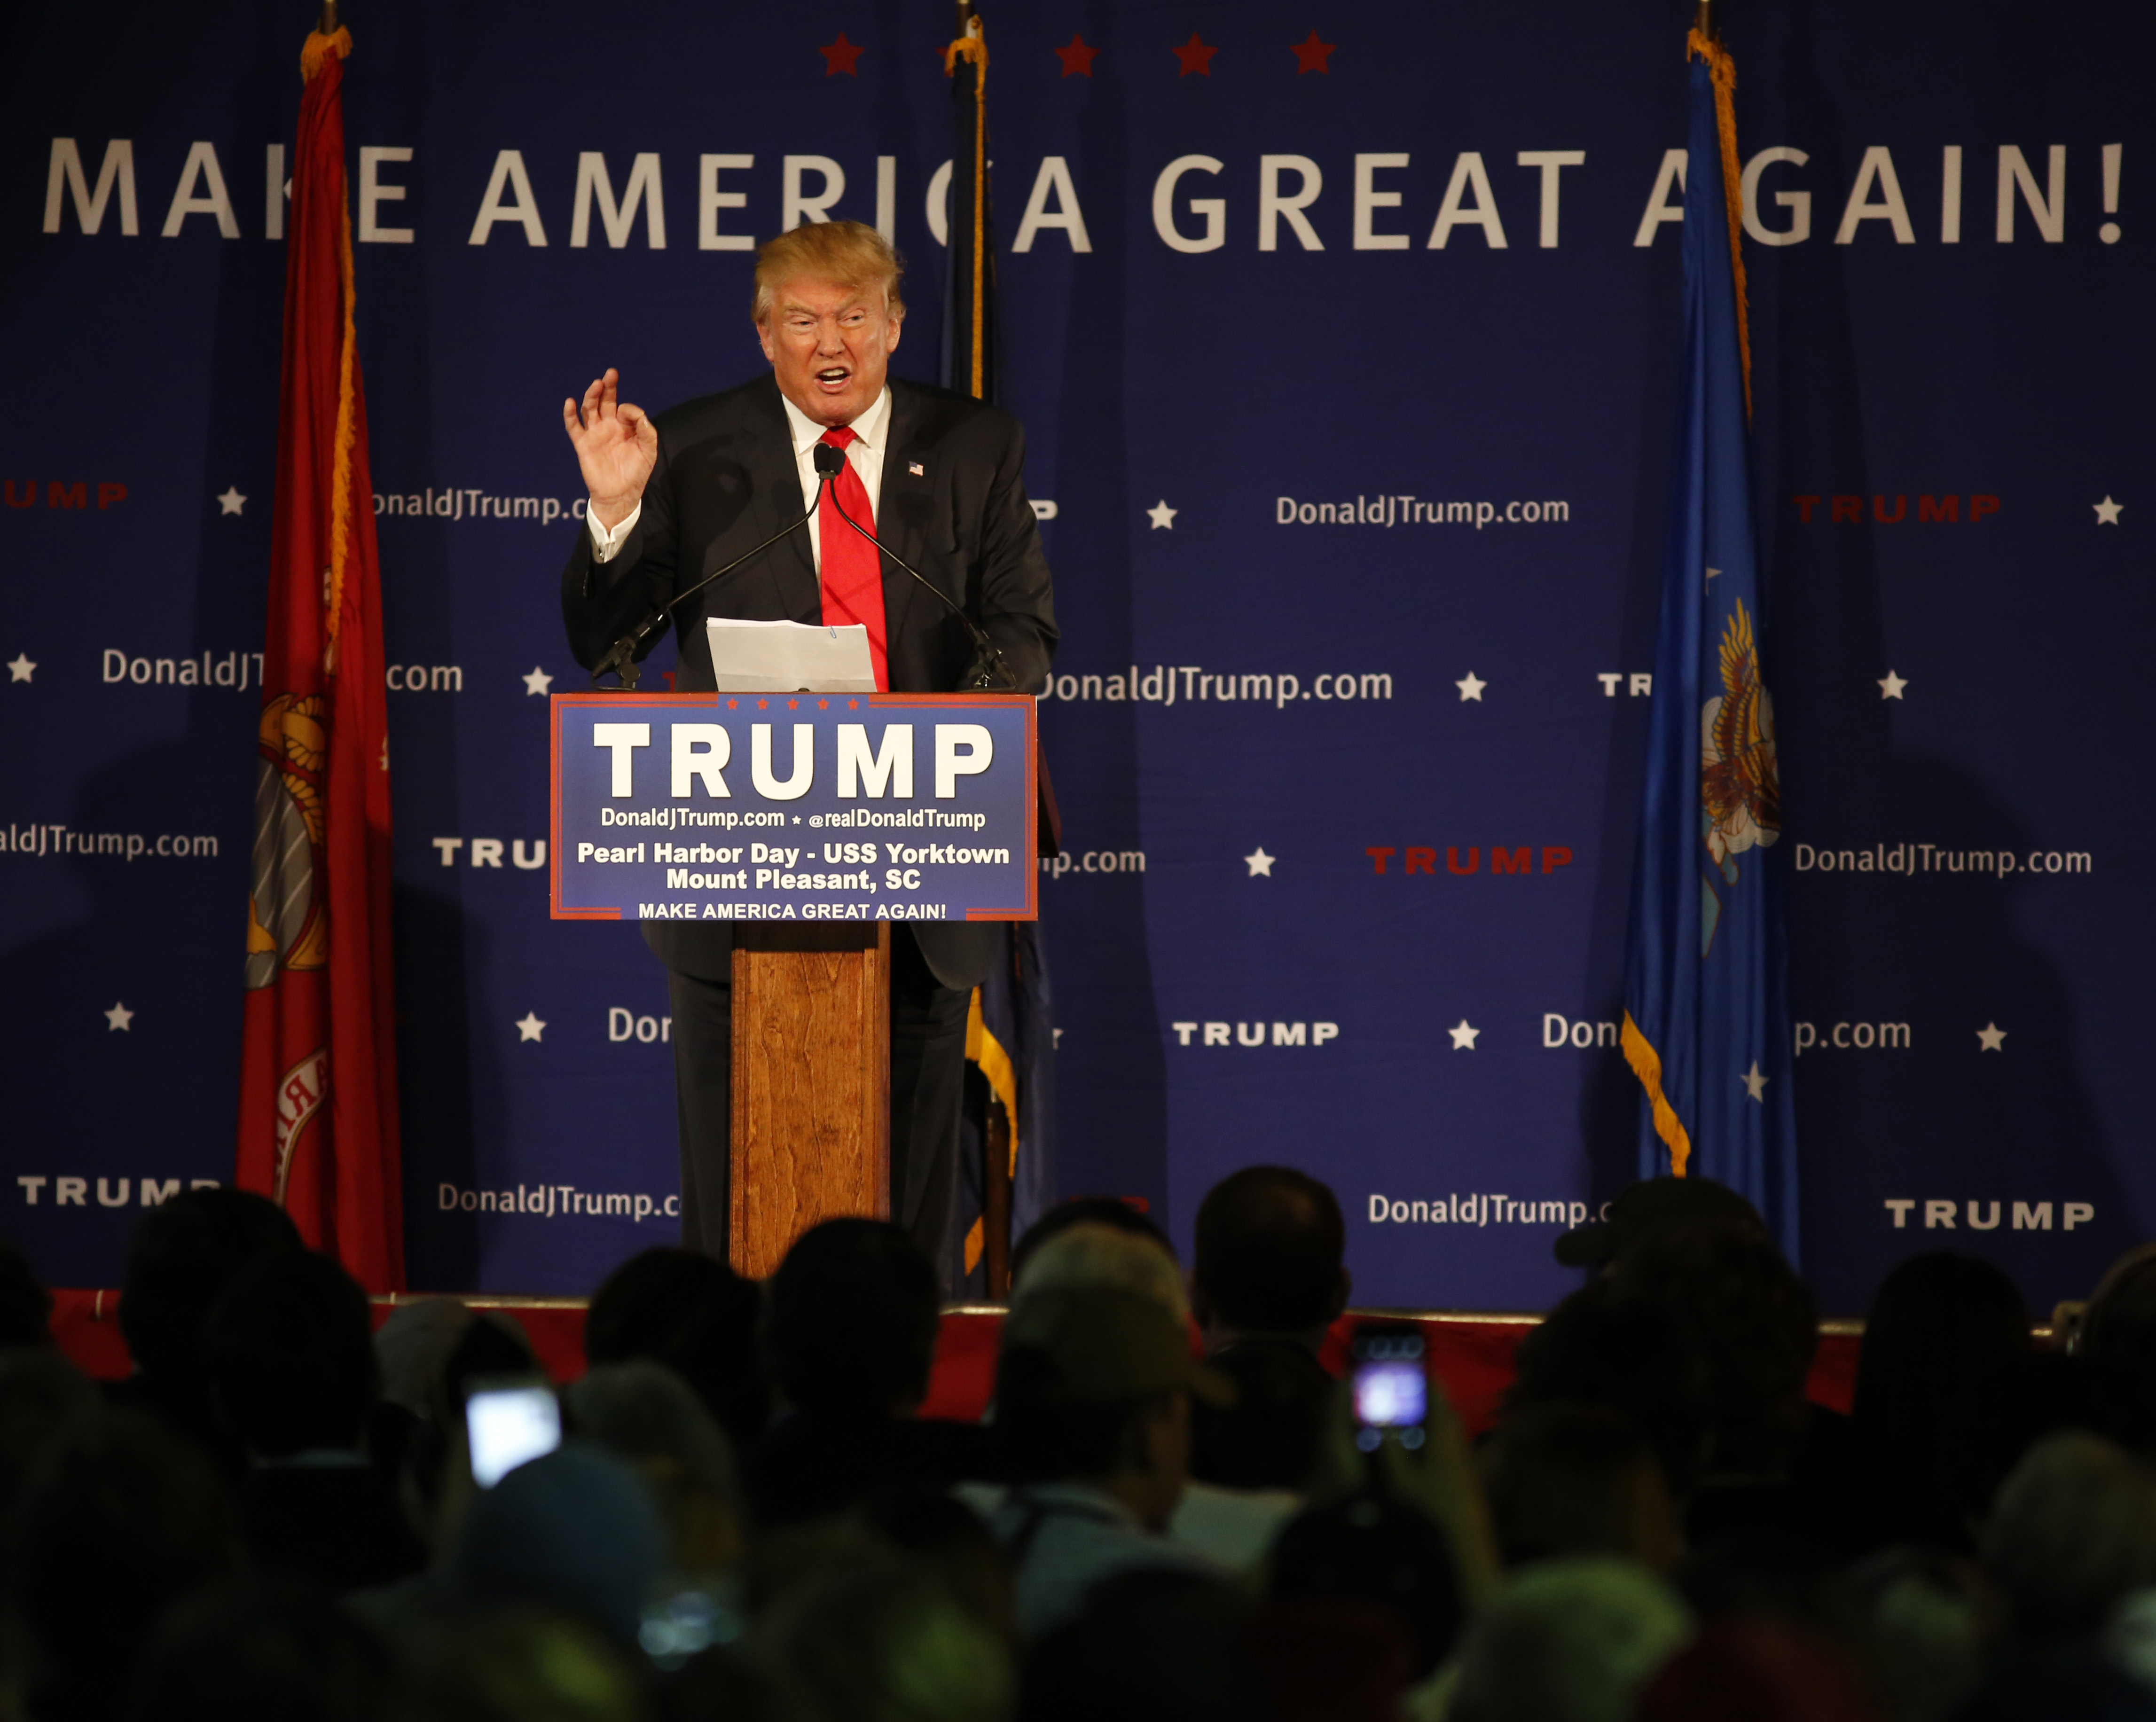 Republican presidential candidate Donald Trump speaks during a rally coinciding with Pearl Harbor Day at Patriots Point aboard the aircraft carrier USS Yorktown in Mt. Pleasant, S.C.